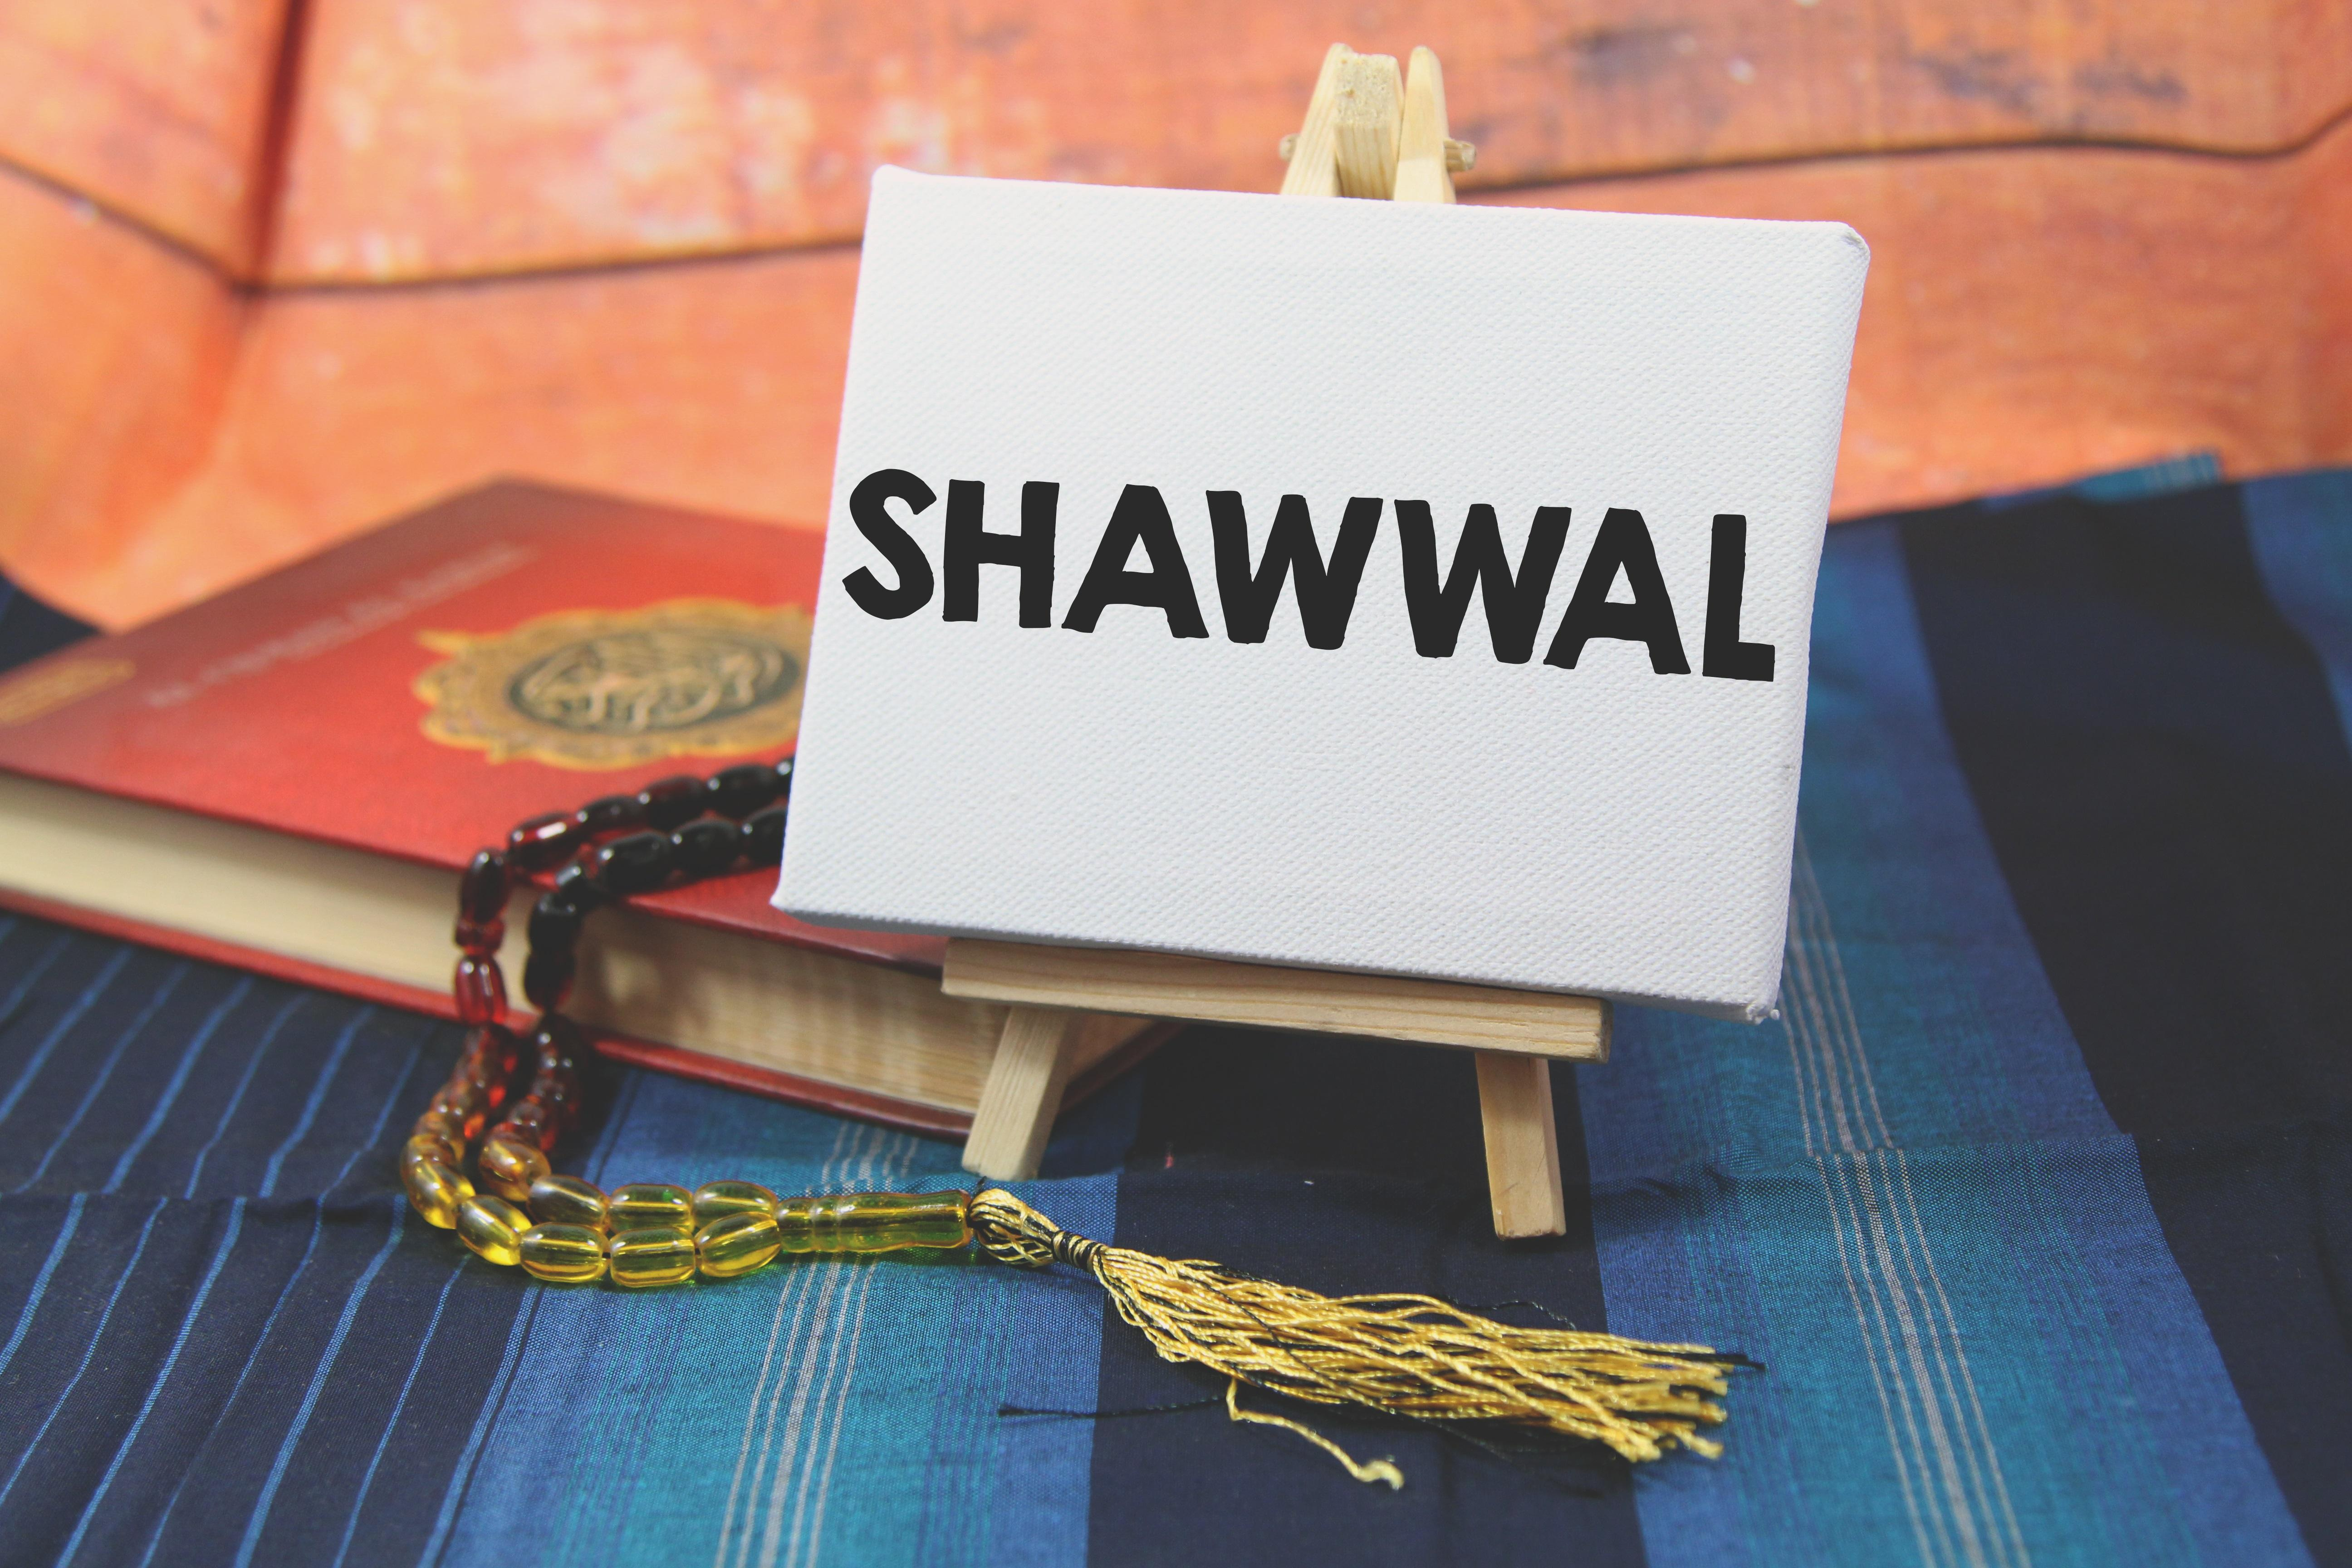 Quran and Islamic Rosary placed behind a stand up board with Shawwal on it